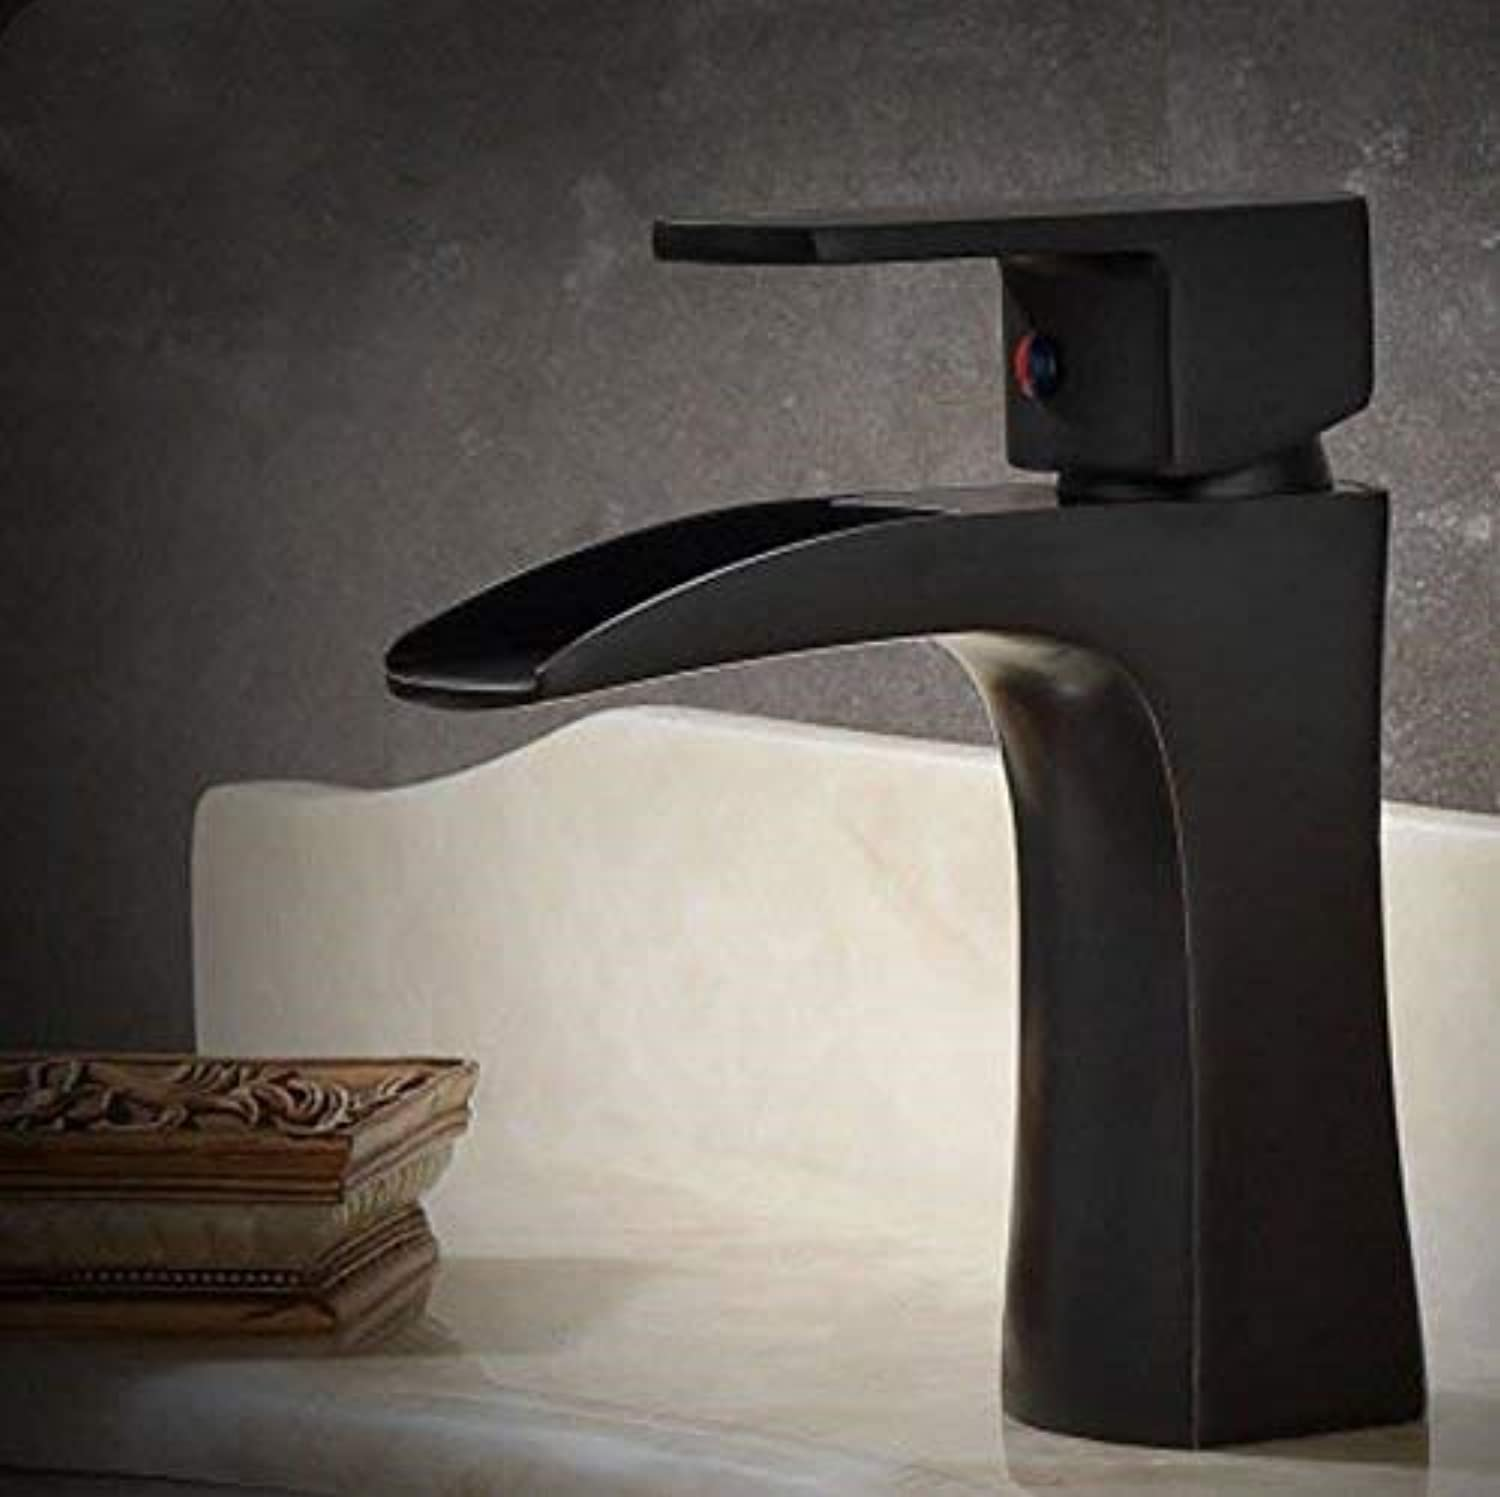 Oudan American Style Simple Blackening Single Single Hole Black Black Copper Basin Cold and Hot Water Faucet Basin Ancient Antique Black Water Faucet (color   -, Size   -)